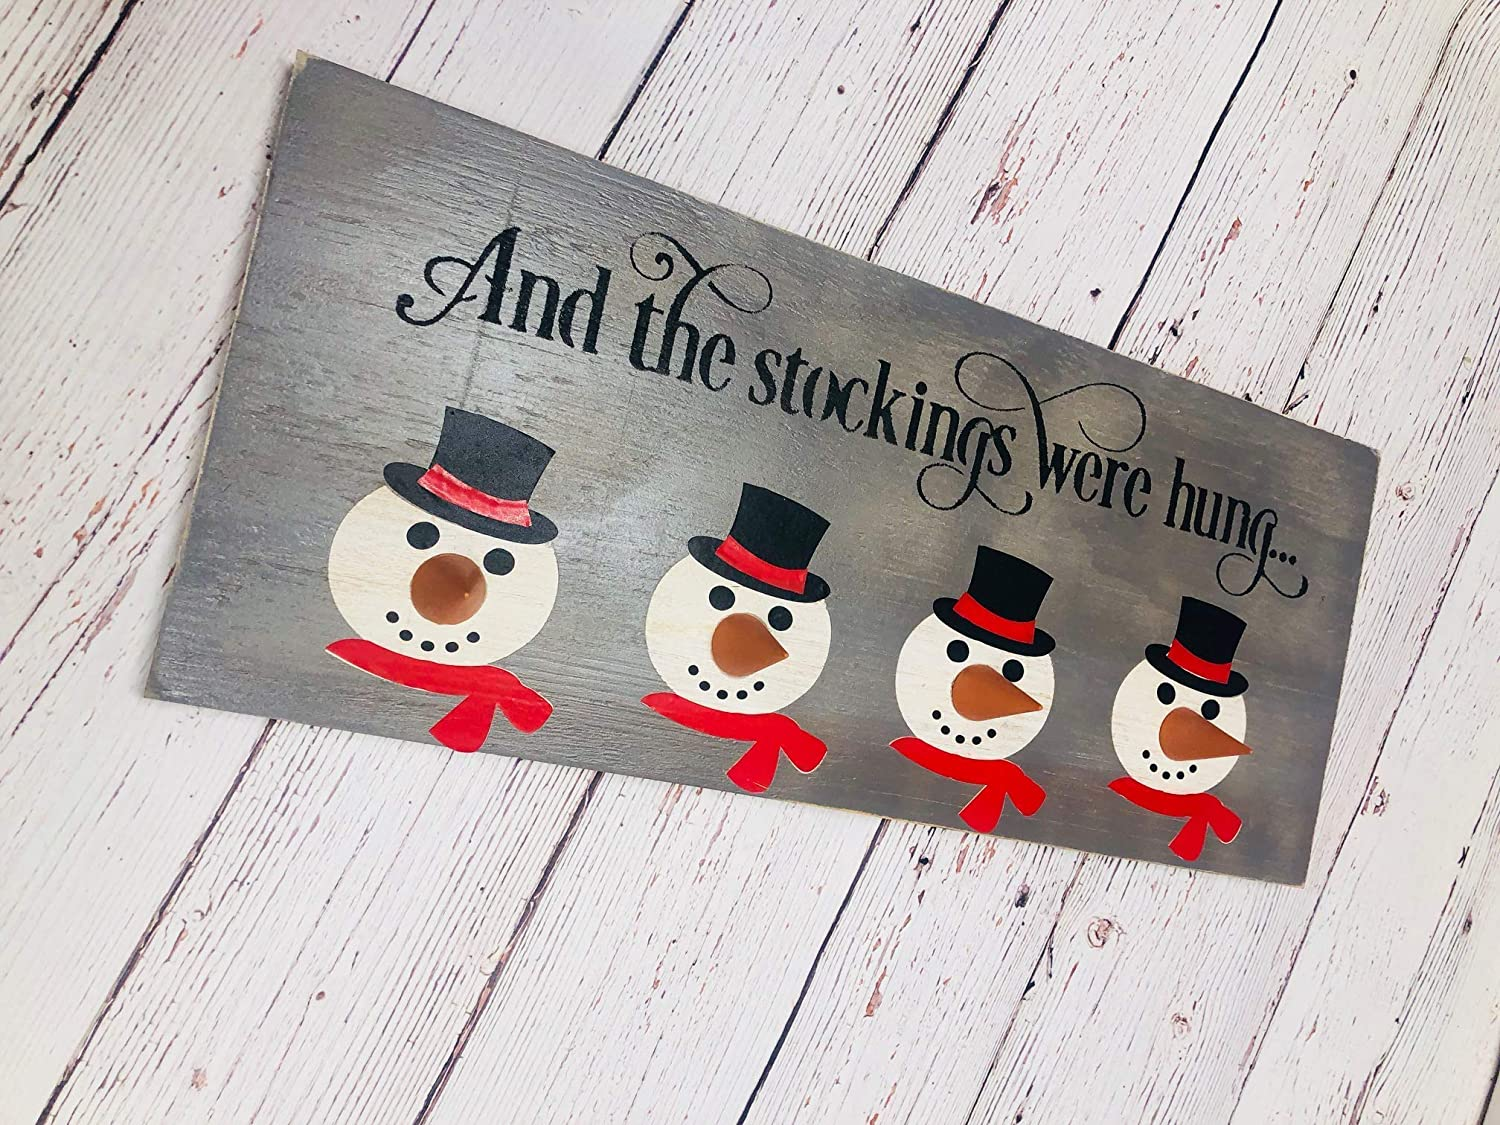 stocking holders and the stockings were hung snowman sign reindeer sign rudolph sign christmas mantel decor mantel alternative personalized stocking holders stocking hangers wood